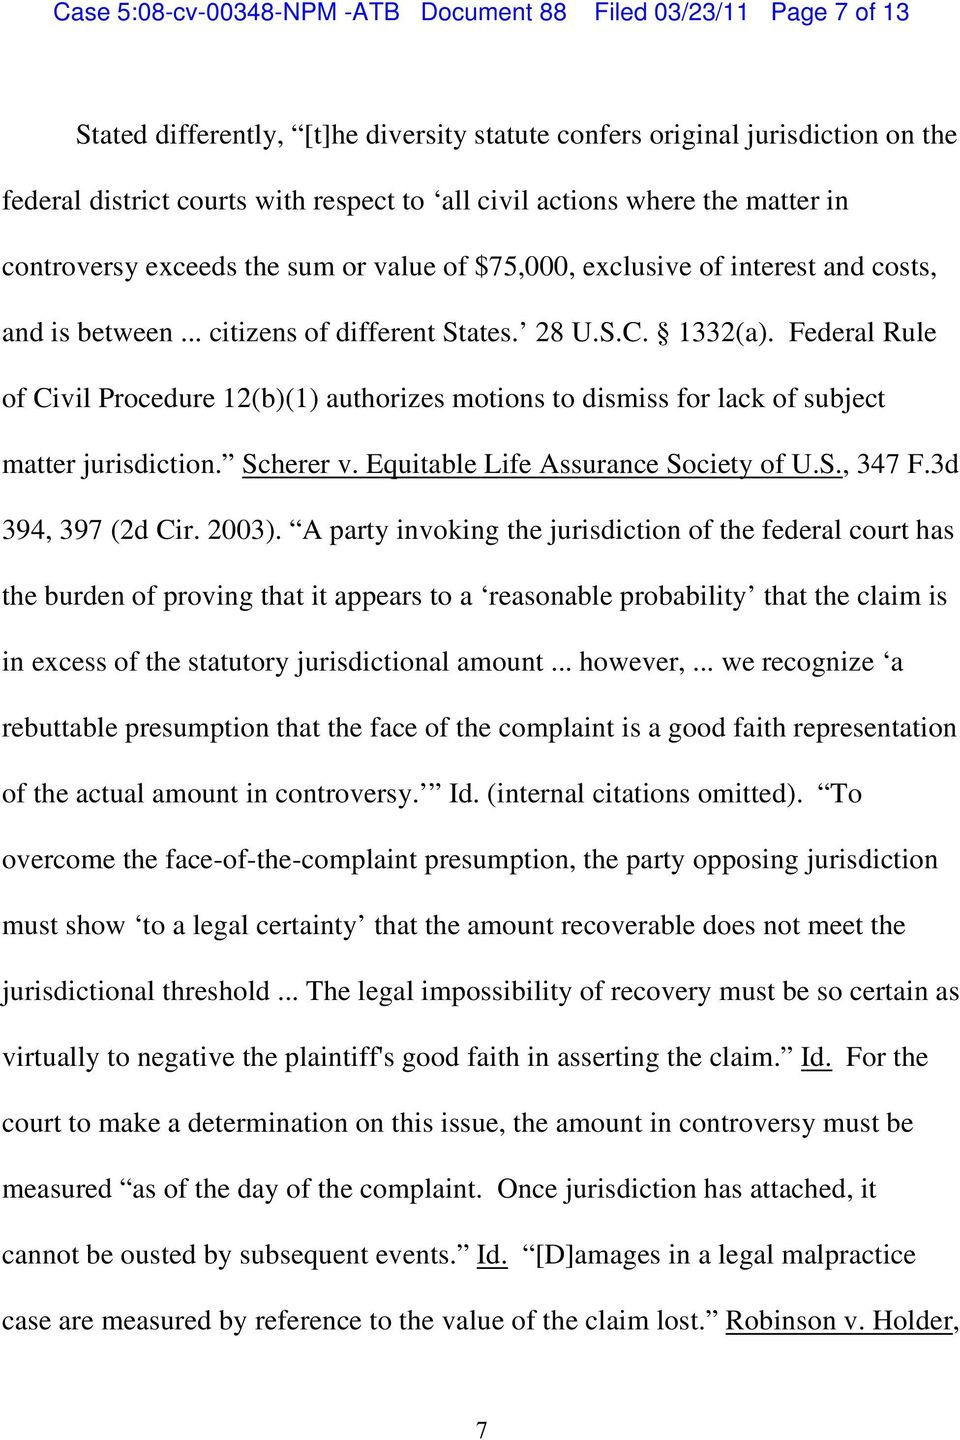 Federal Rule of Civil Procedure 12(b)(1) authorizes motions to dismiss for lack of subject matter jurisdiction. Scherer v. Equitable Life Assurance Society of U.S., 347 F.3d 394, 397 (2d Cir. 2003).